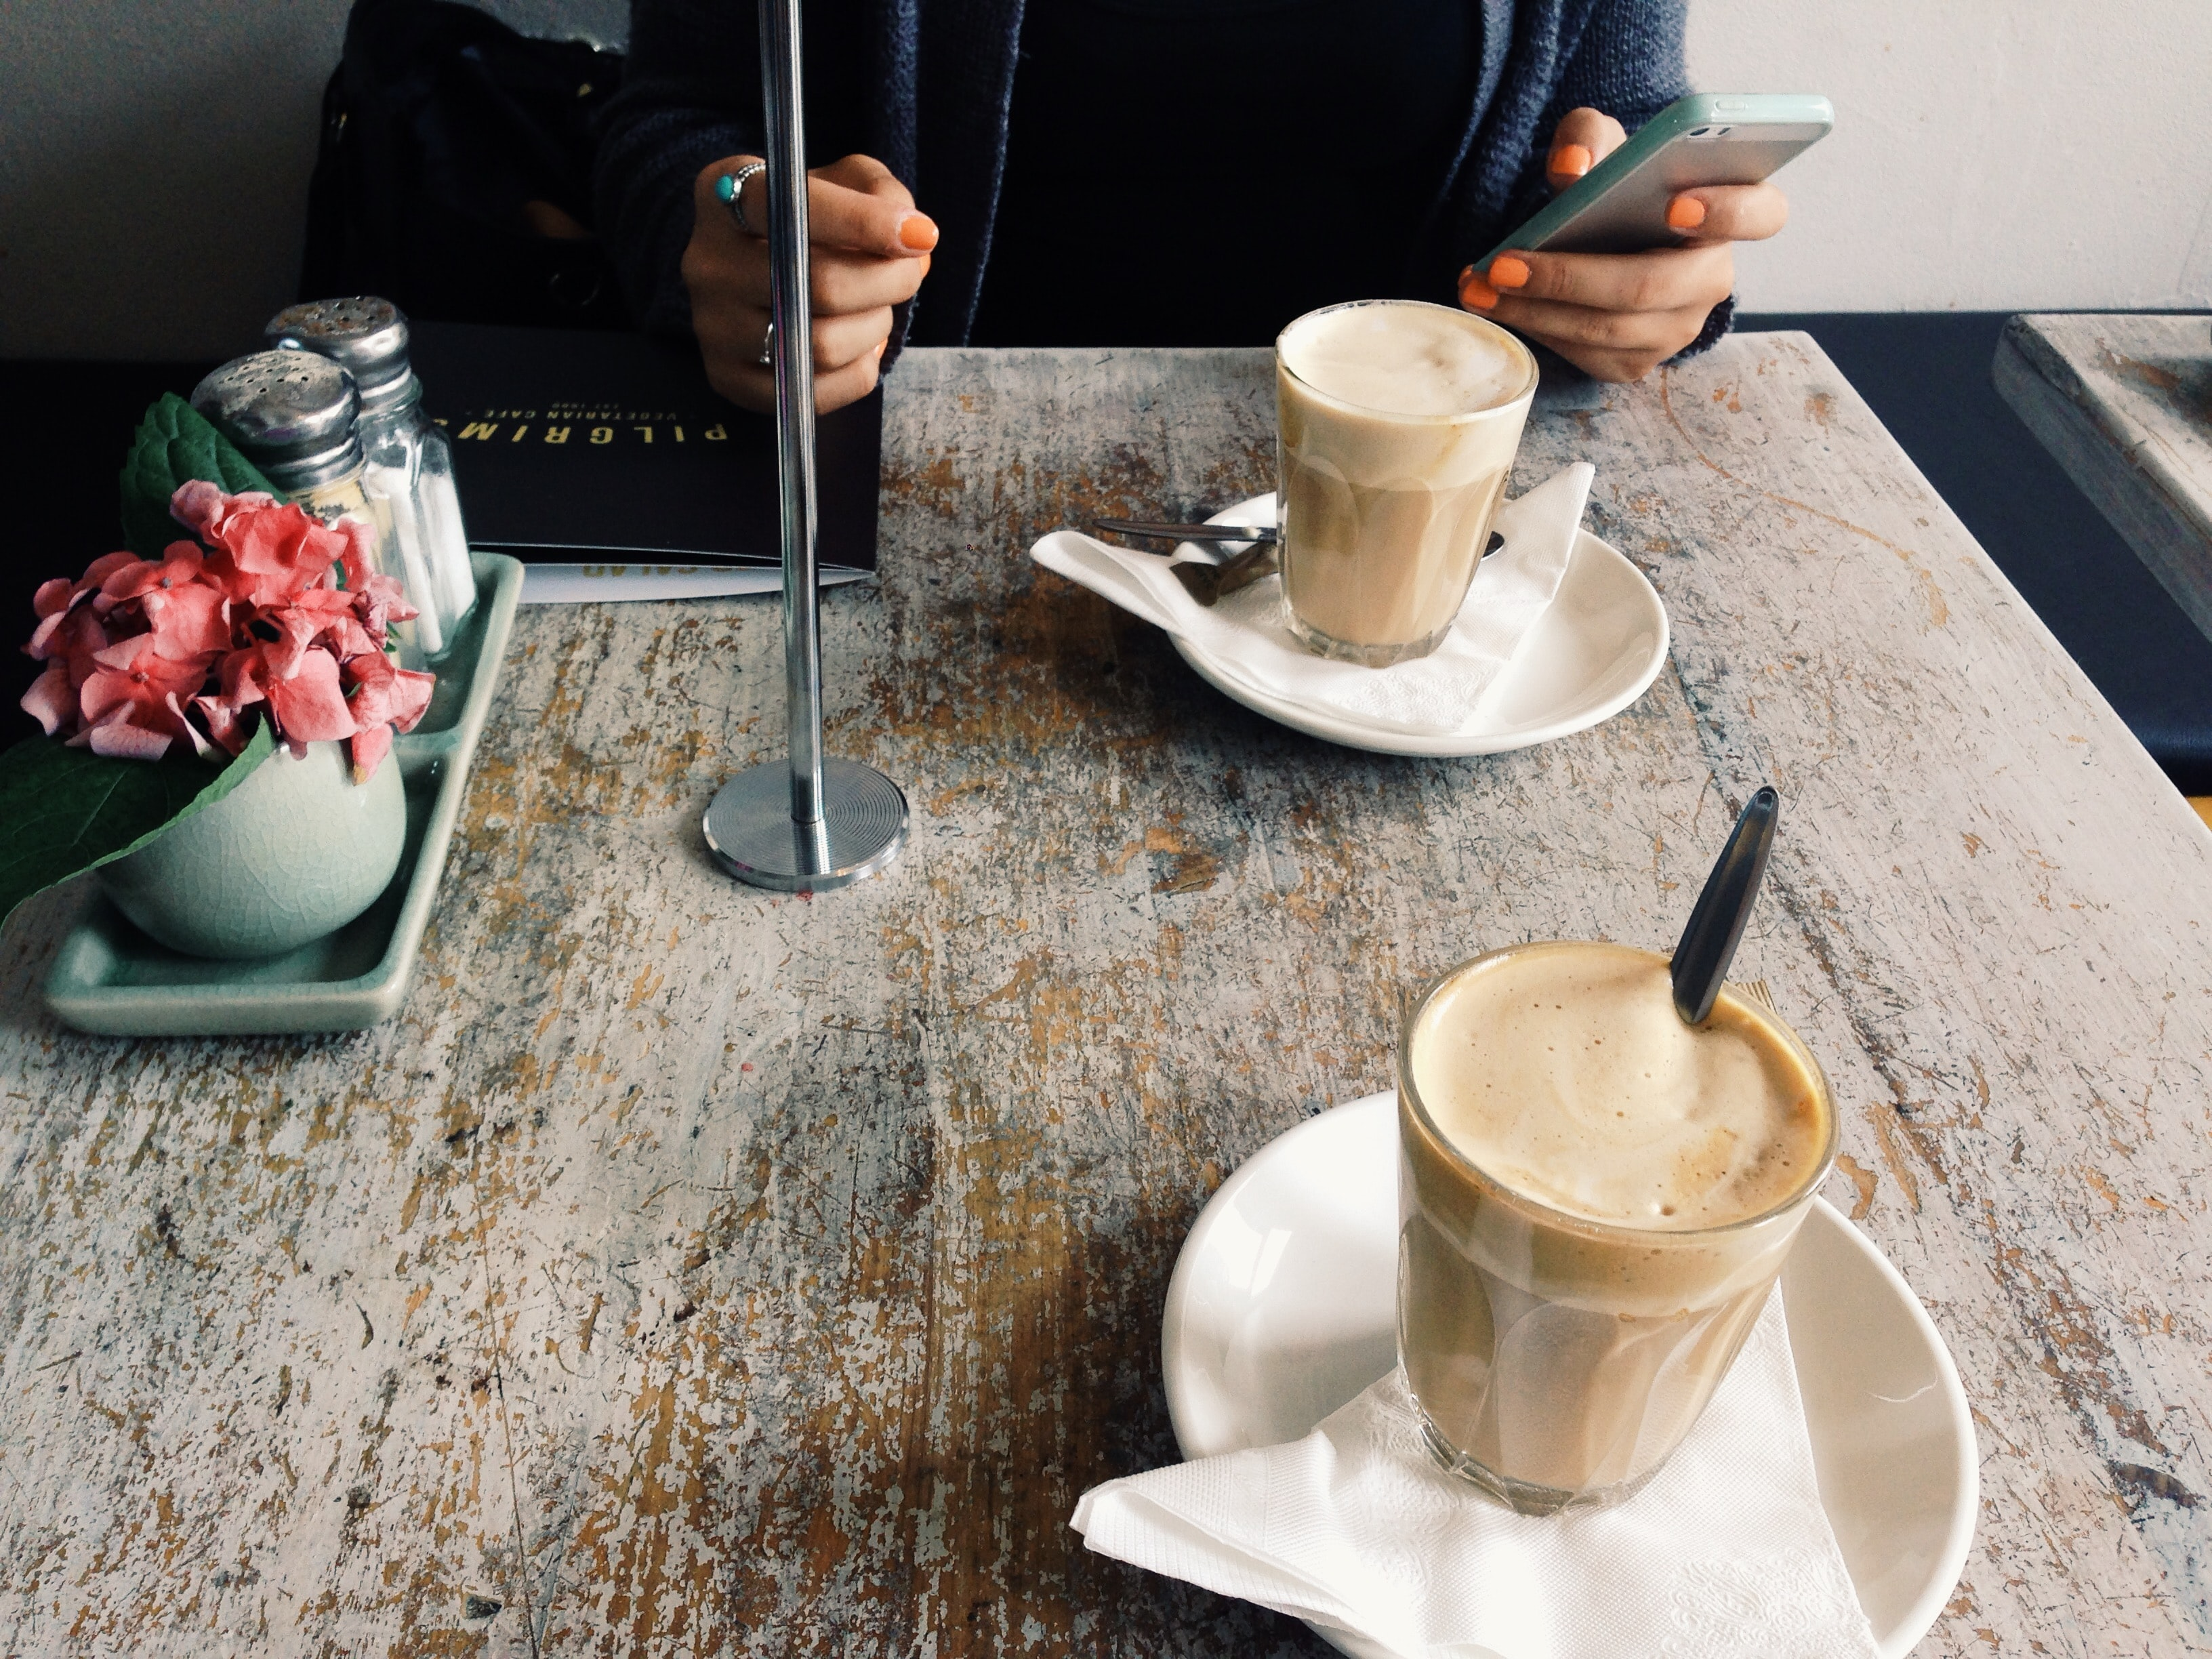 A person with a smartphone in their hand sitting at a table with two cups of latte